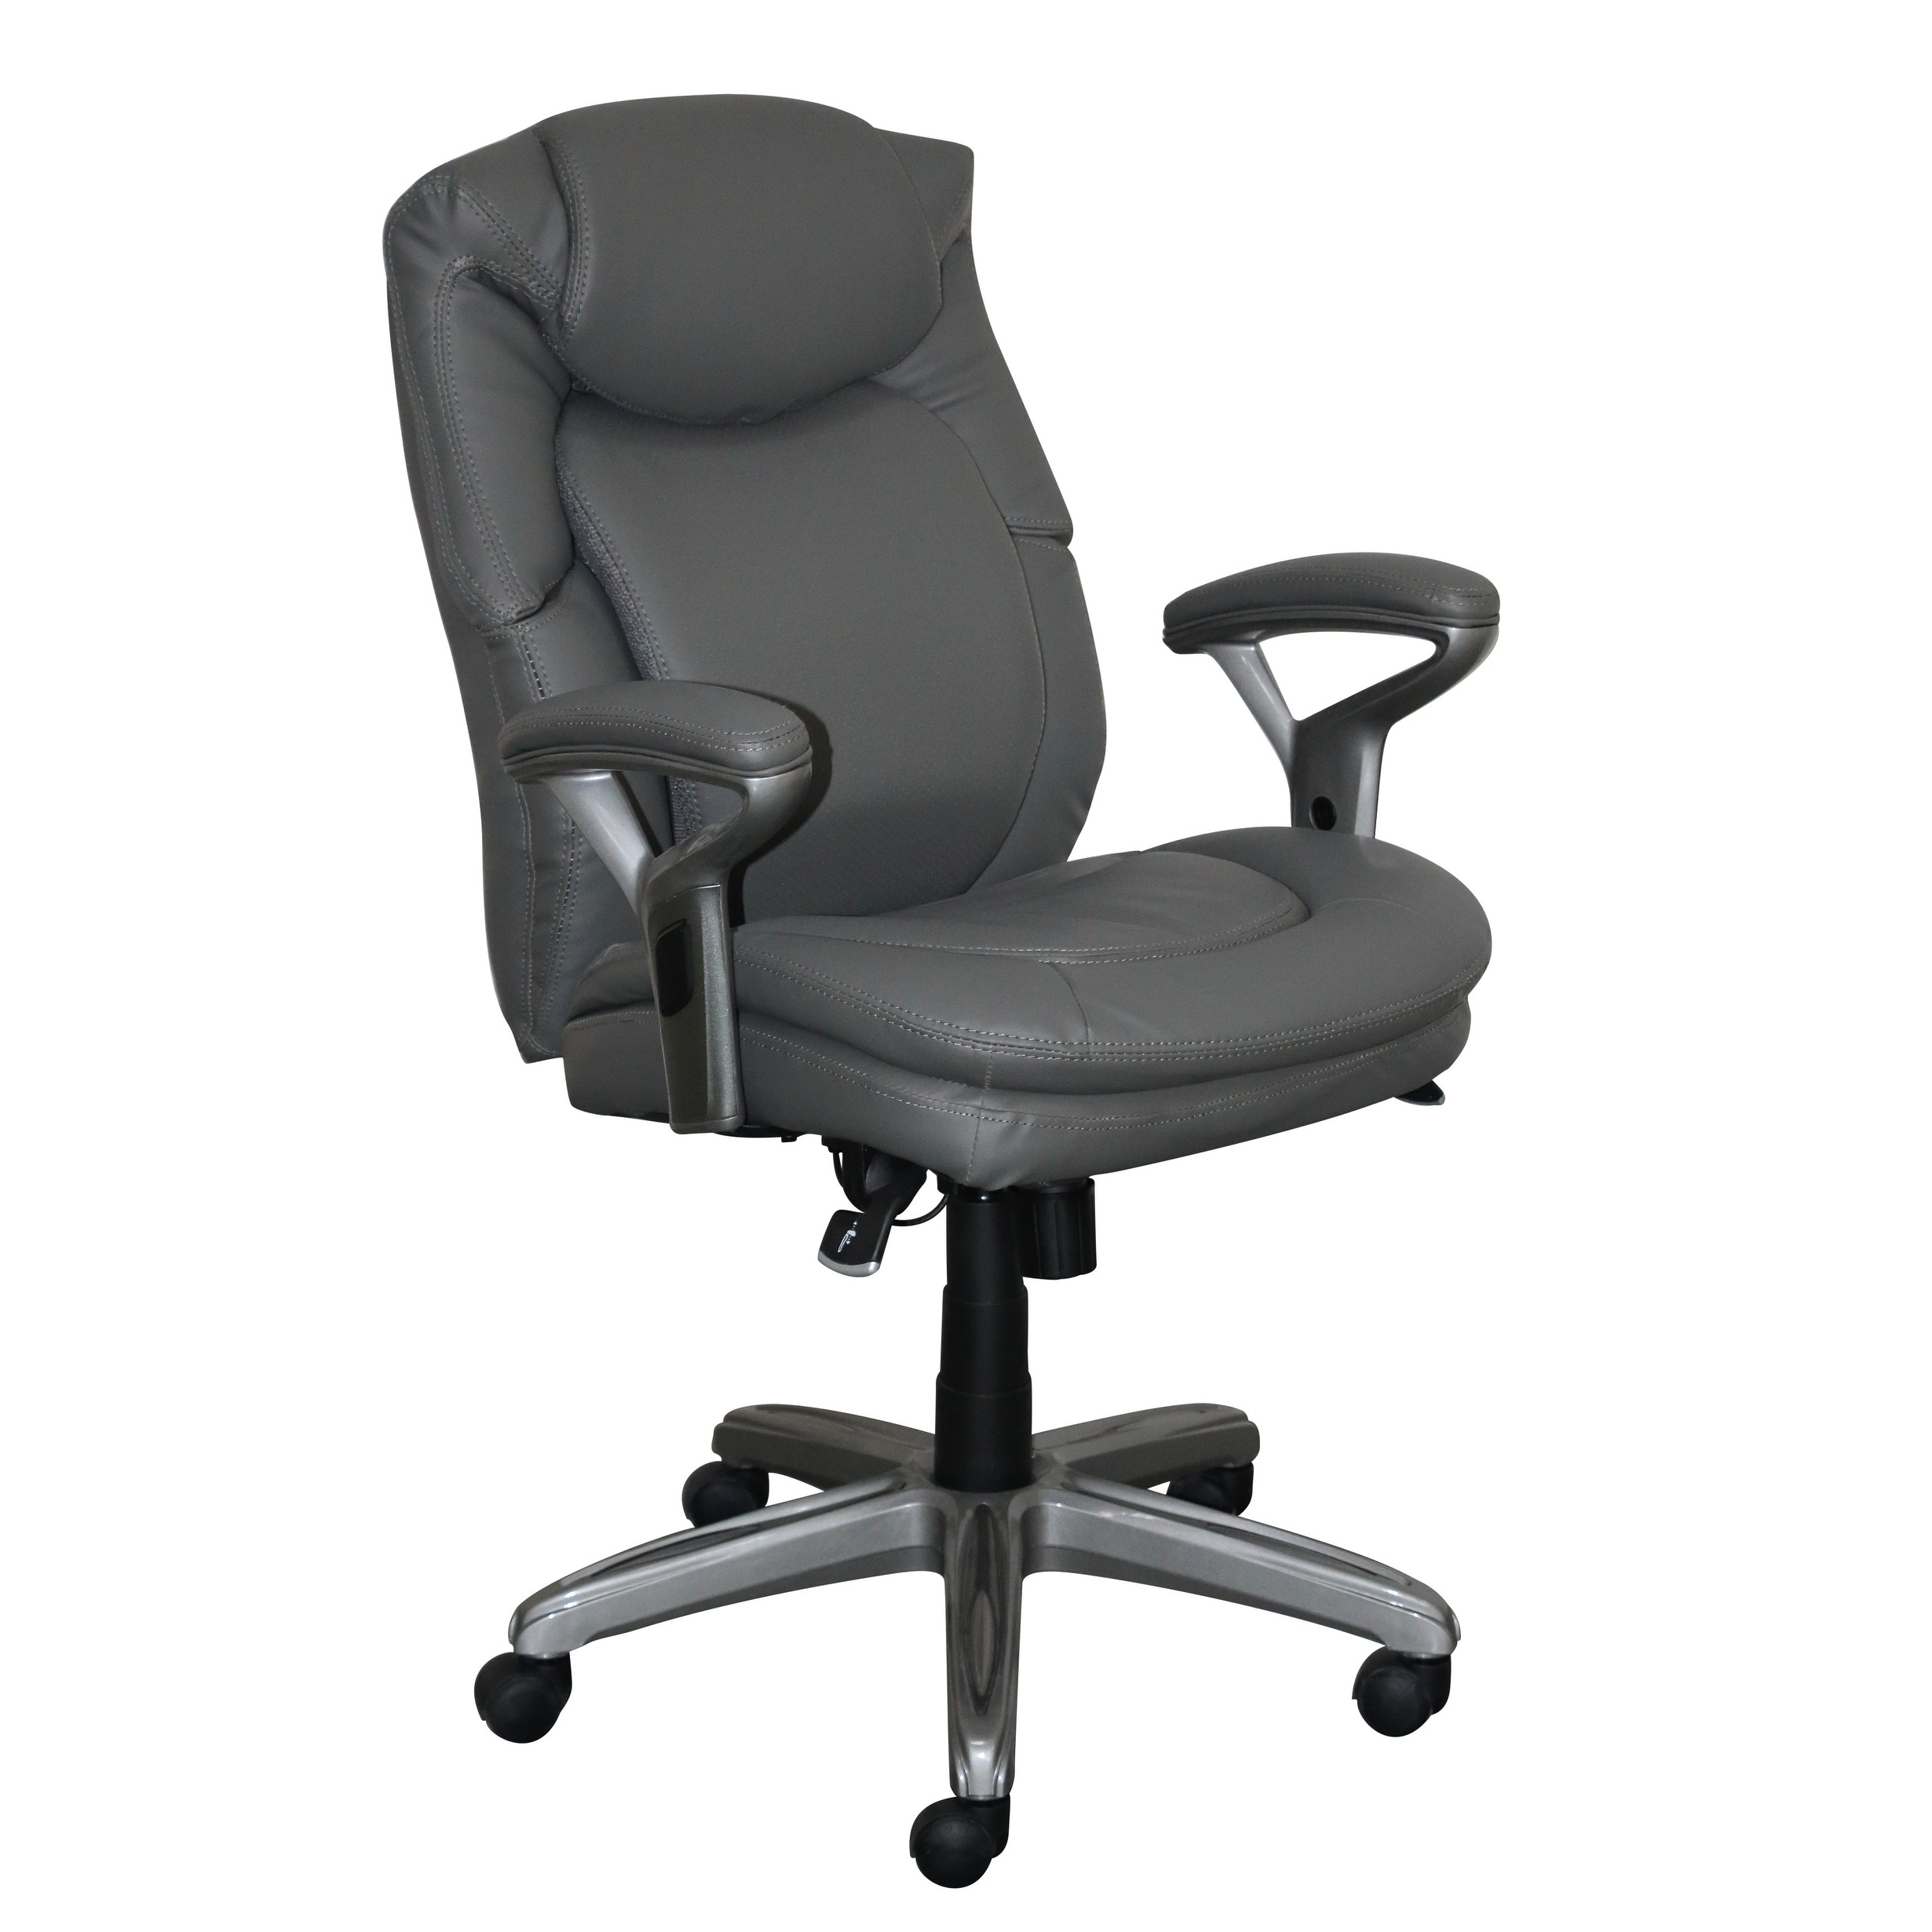 Serta Wellness By Design Mid Back Leather Office Chair Innovate Gray Free Shipping Today 21122059